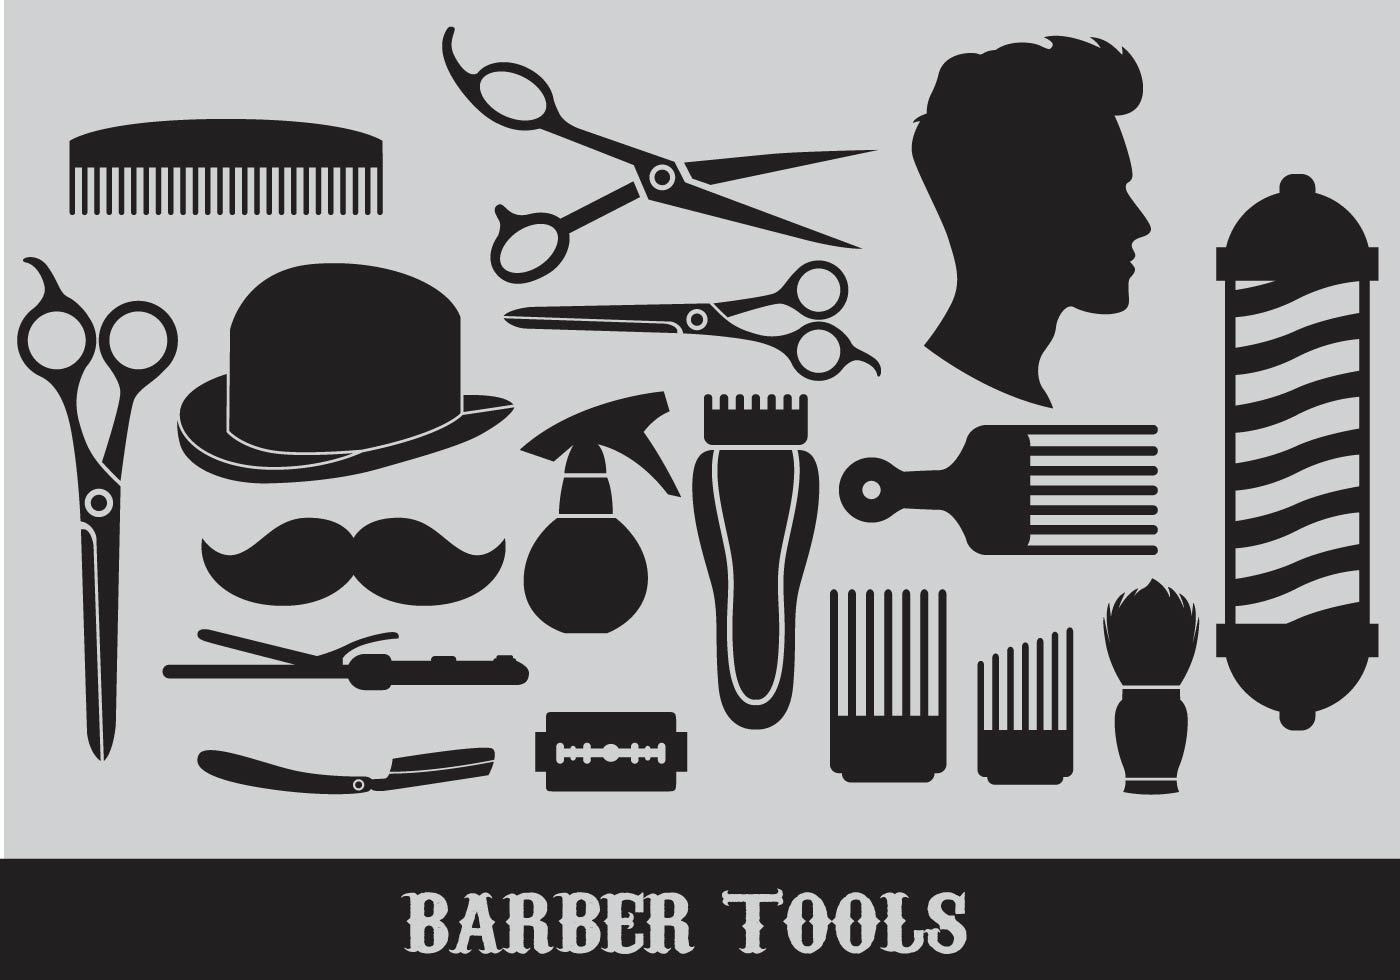 barber logo svg - HD 1400×980